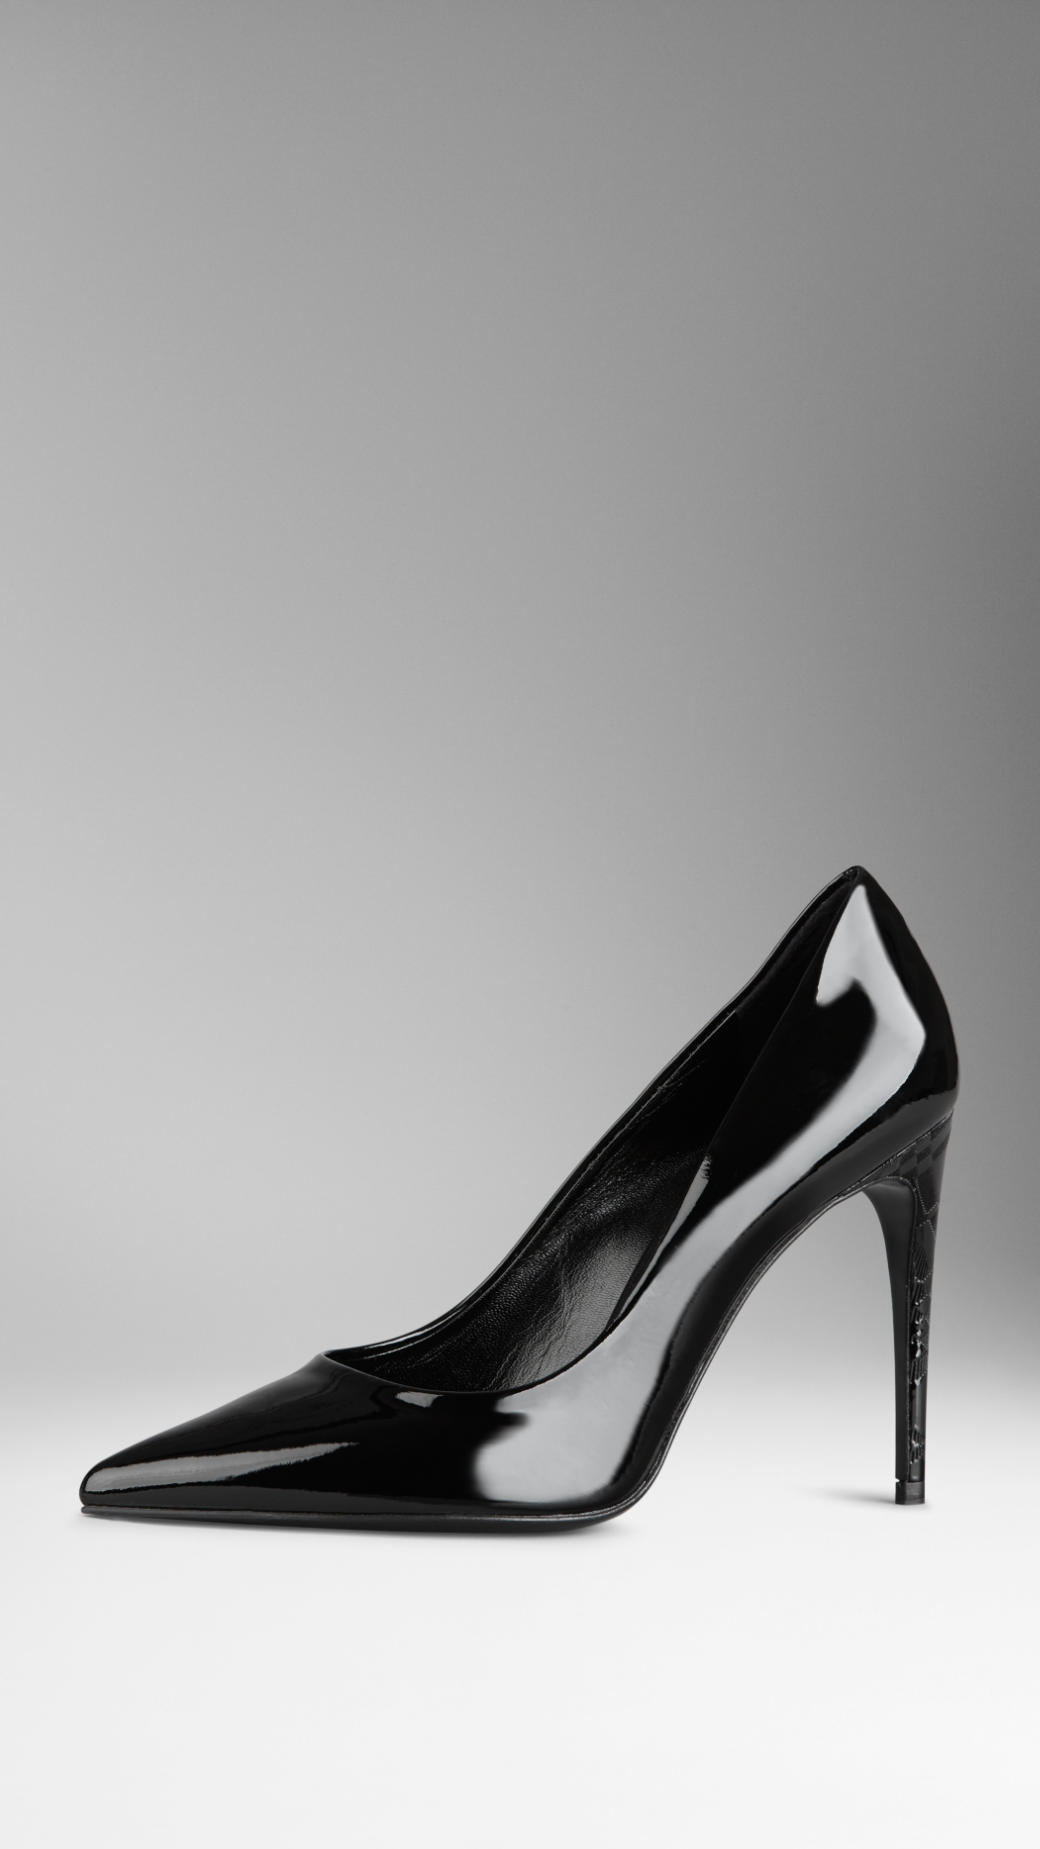 aa6bcc7c1f1 Lyst - Burberry Patent Leather Embossed Check Heel Pumps in Black